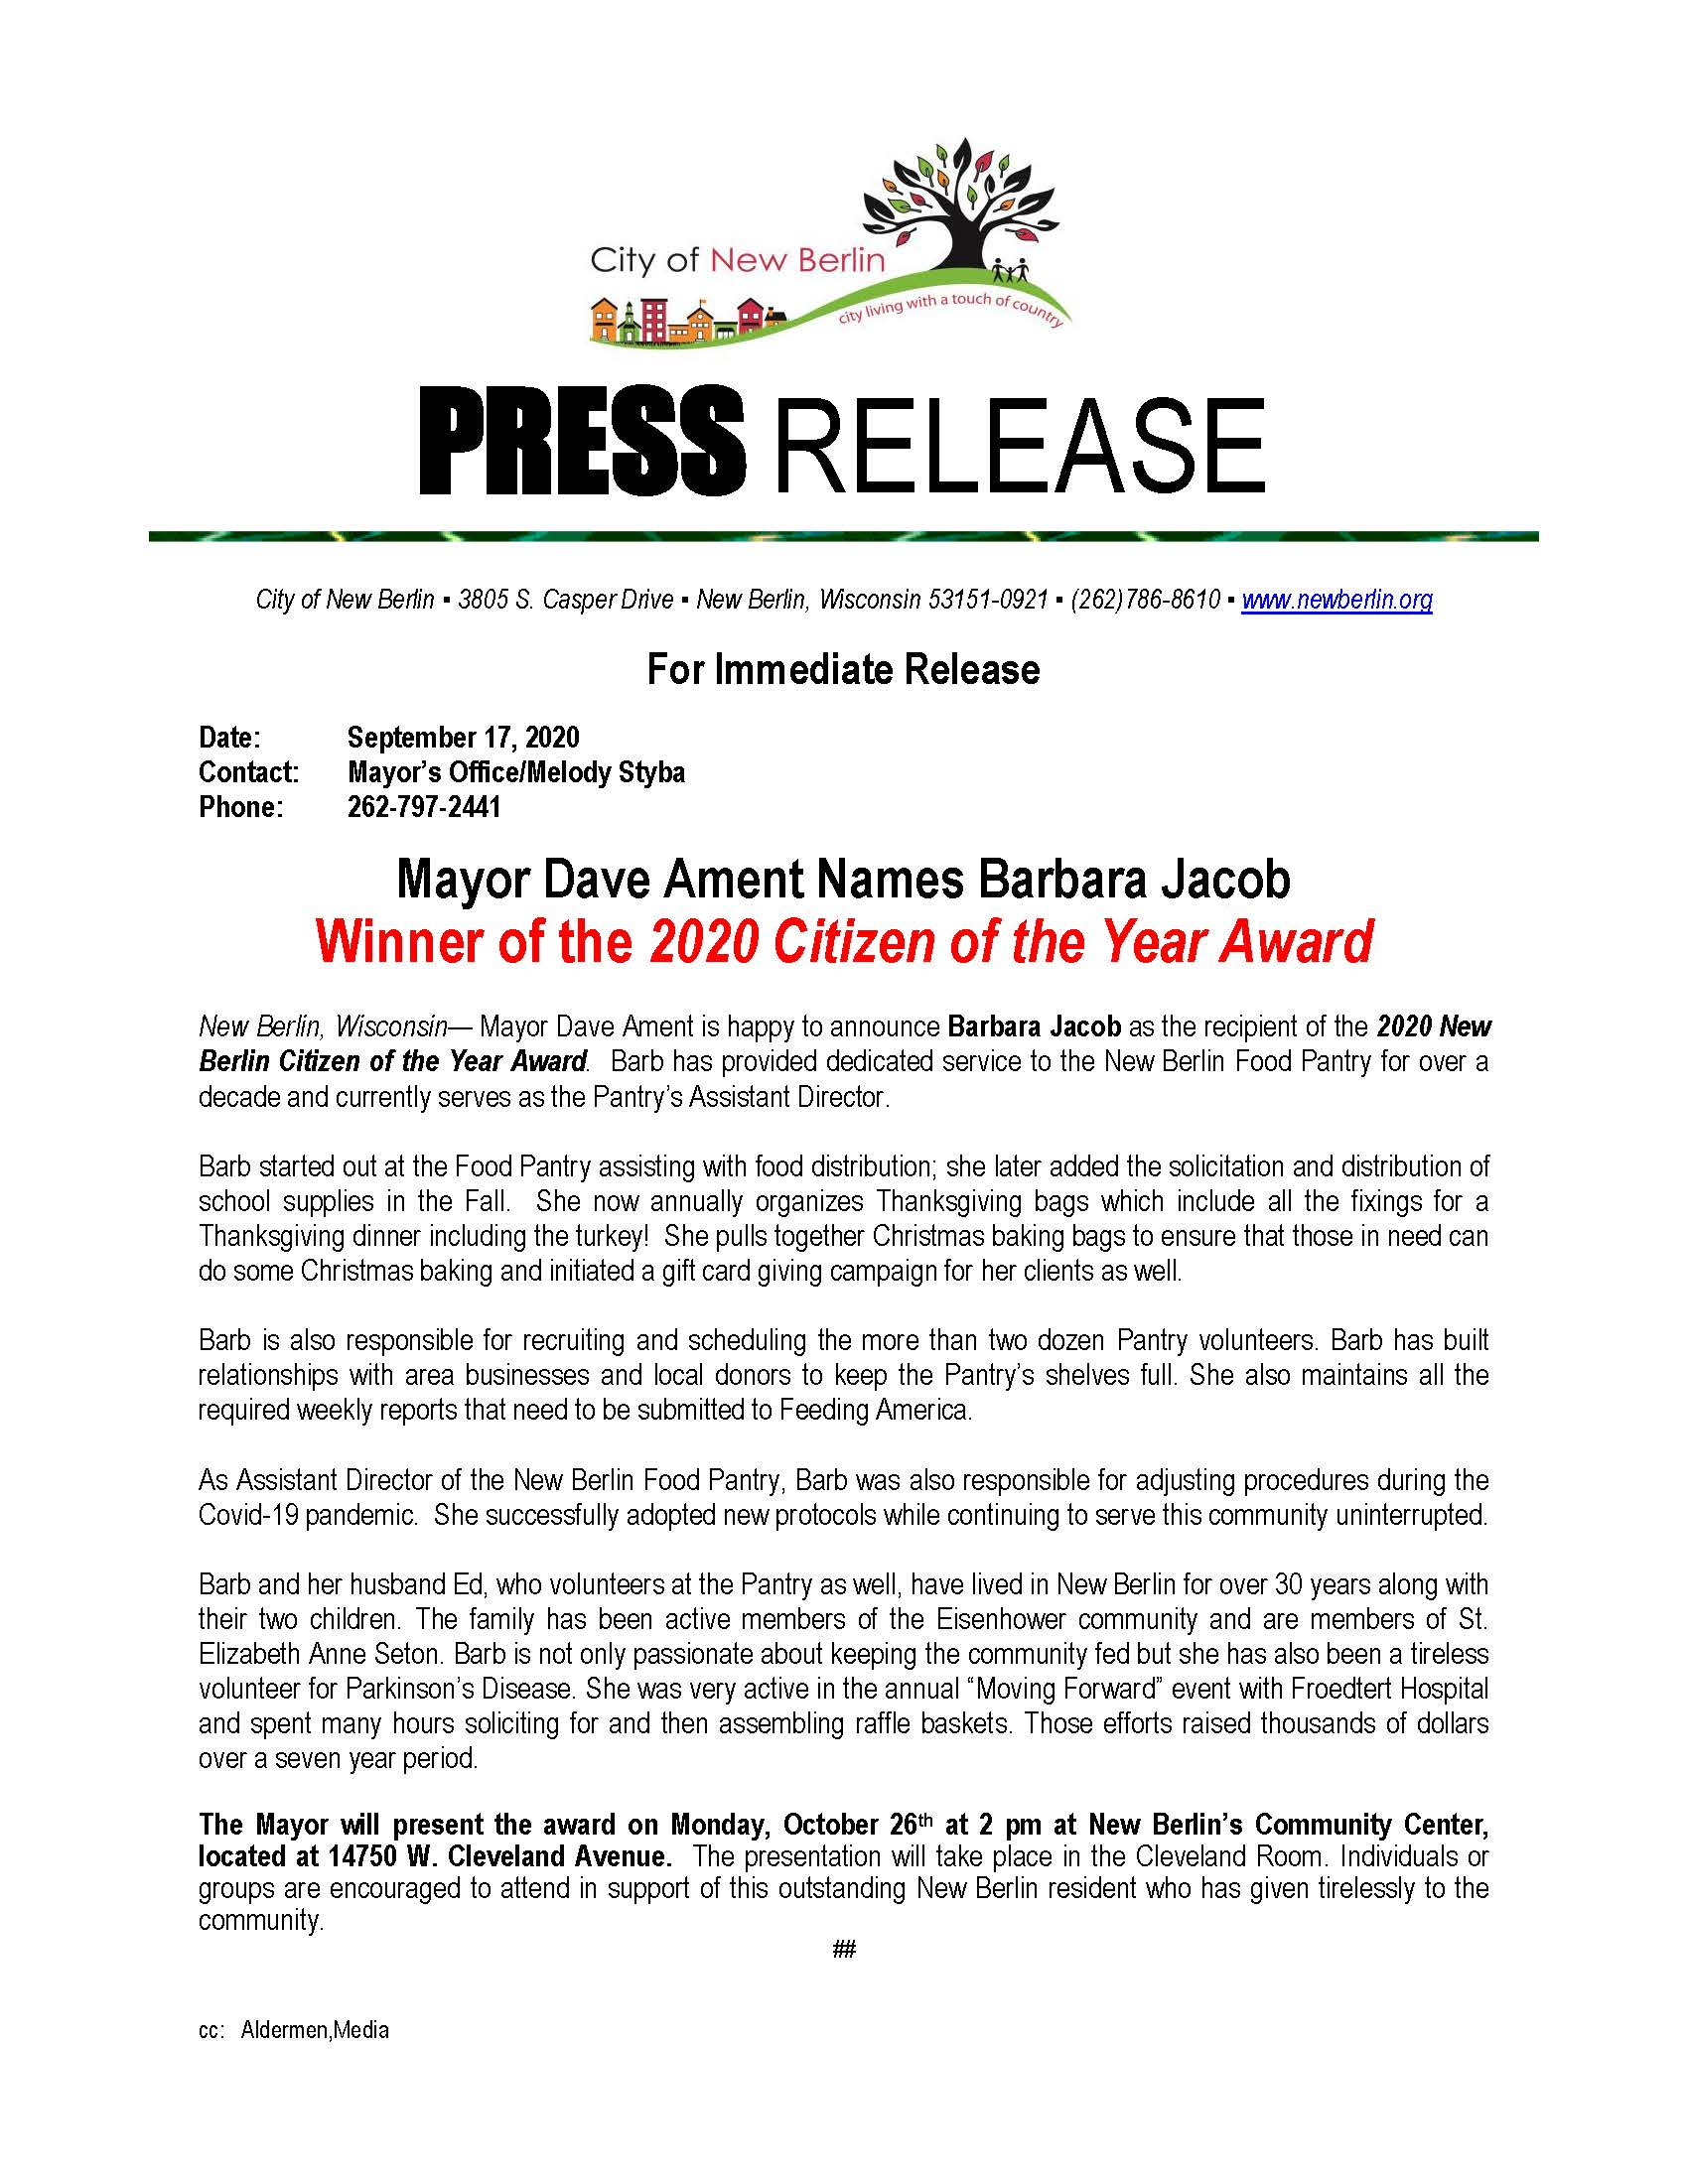 Press-Release-Citizen of the Year Announcement